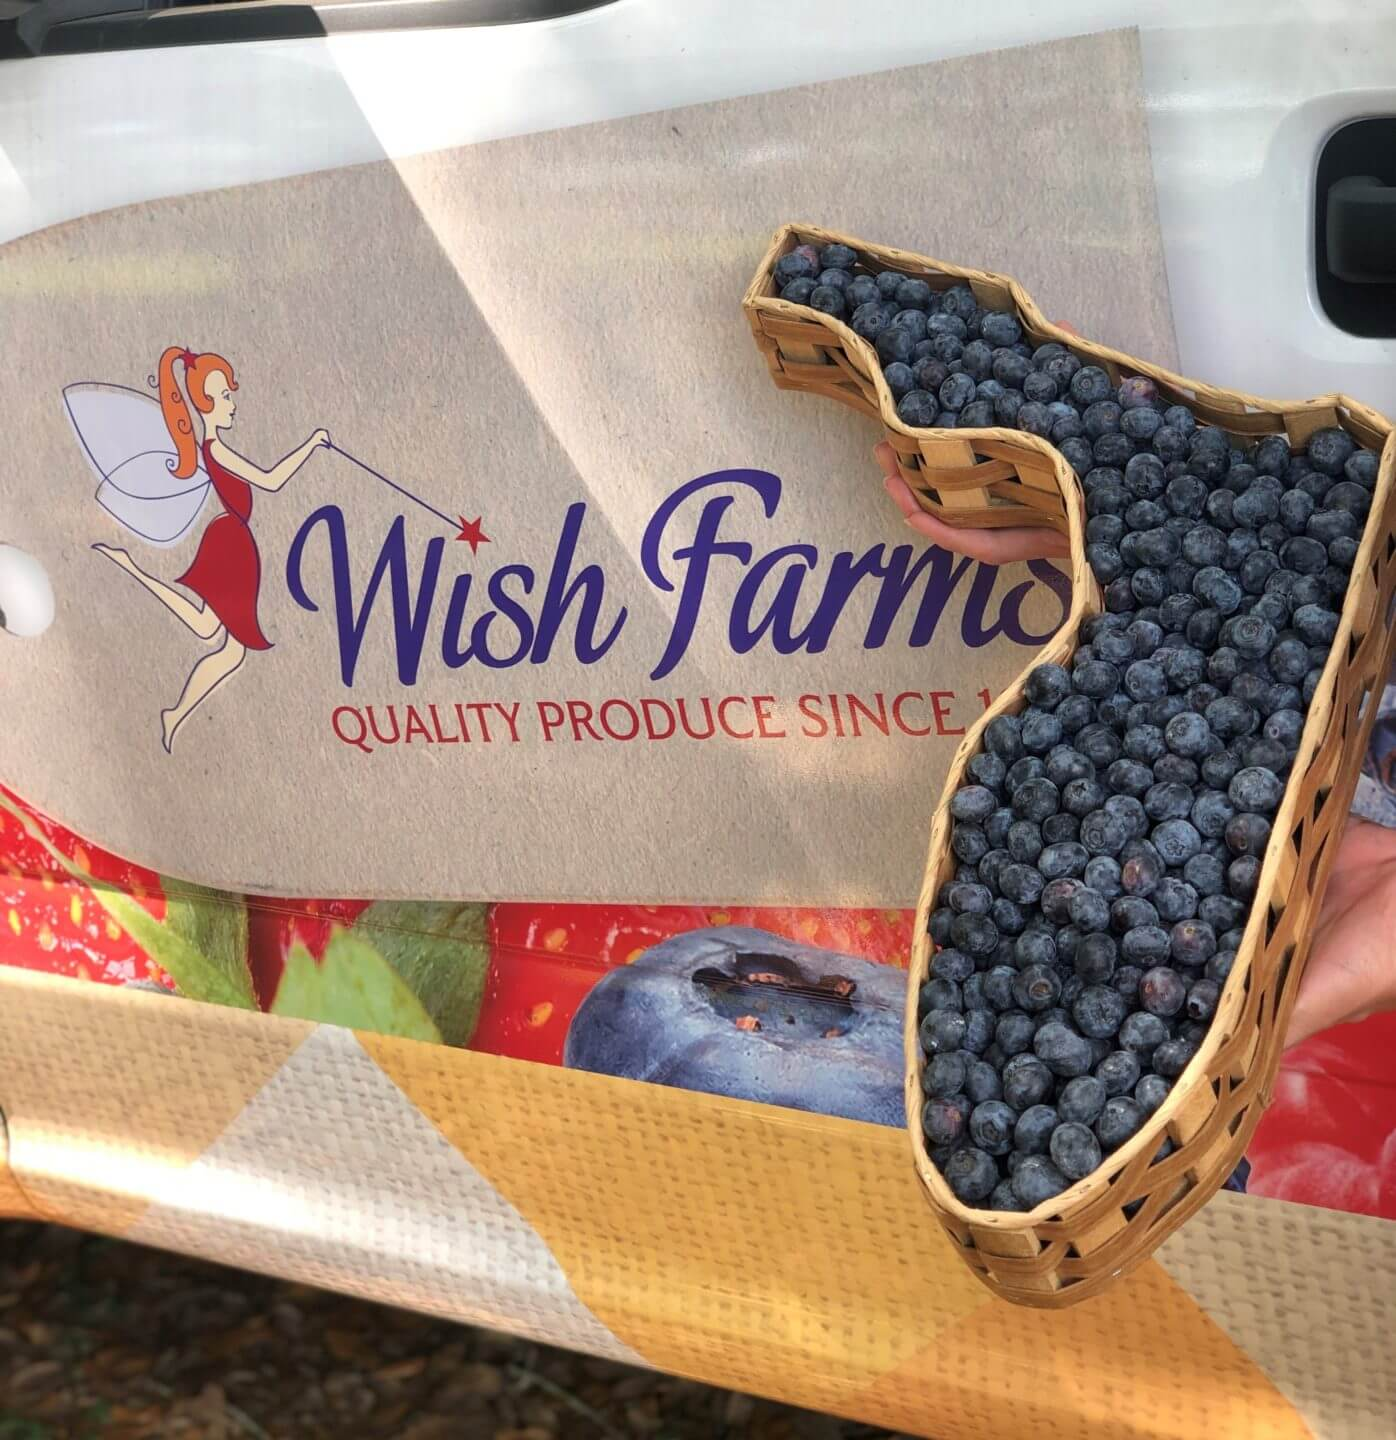 FL blueberry basket Wish Farms Truck